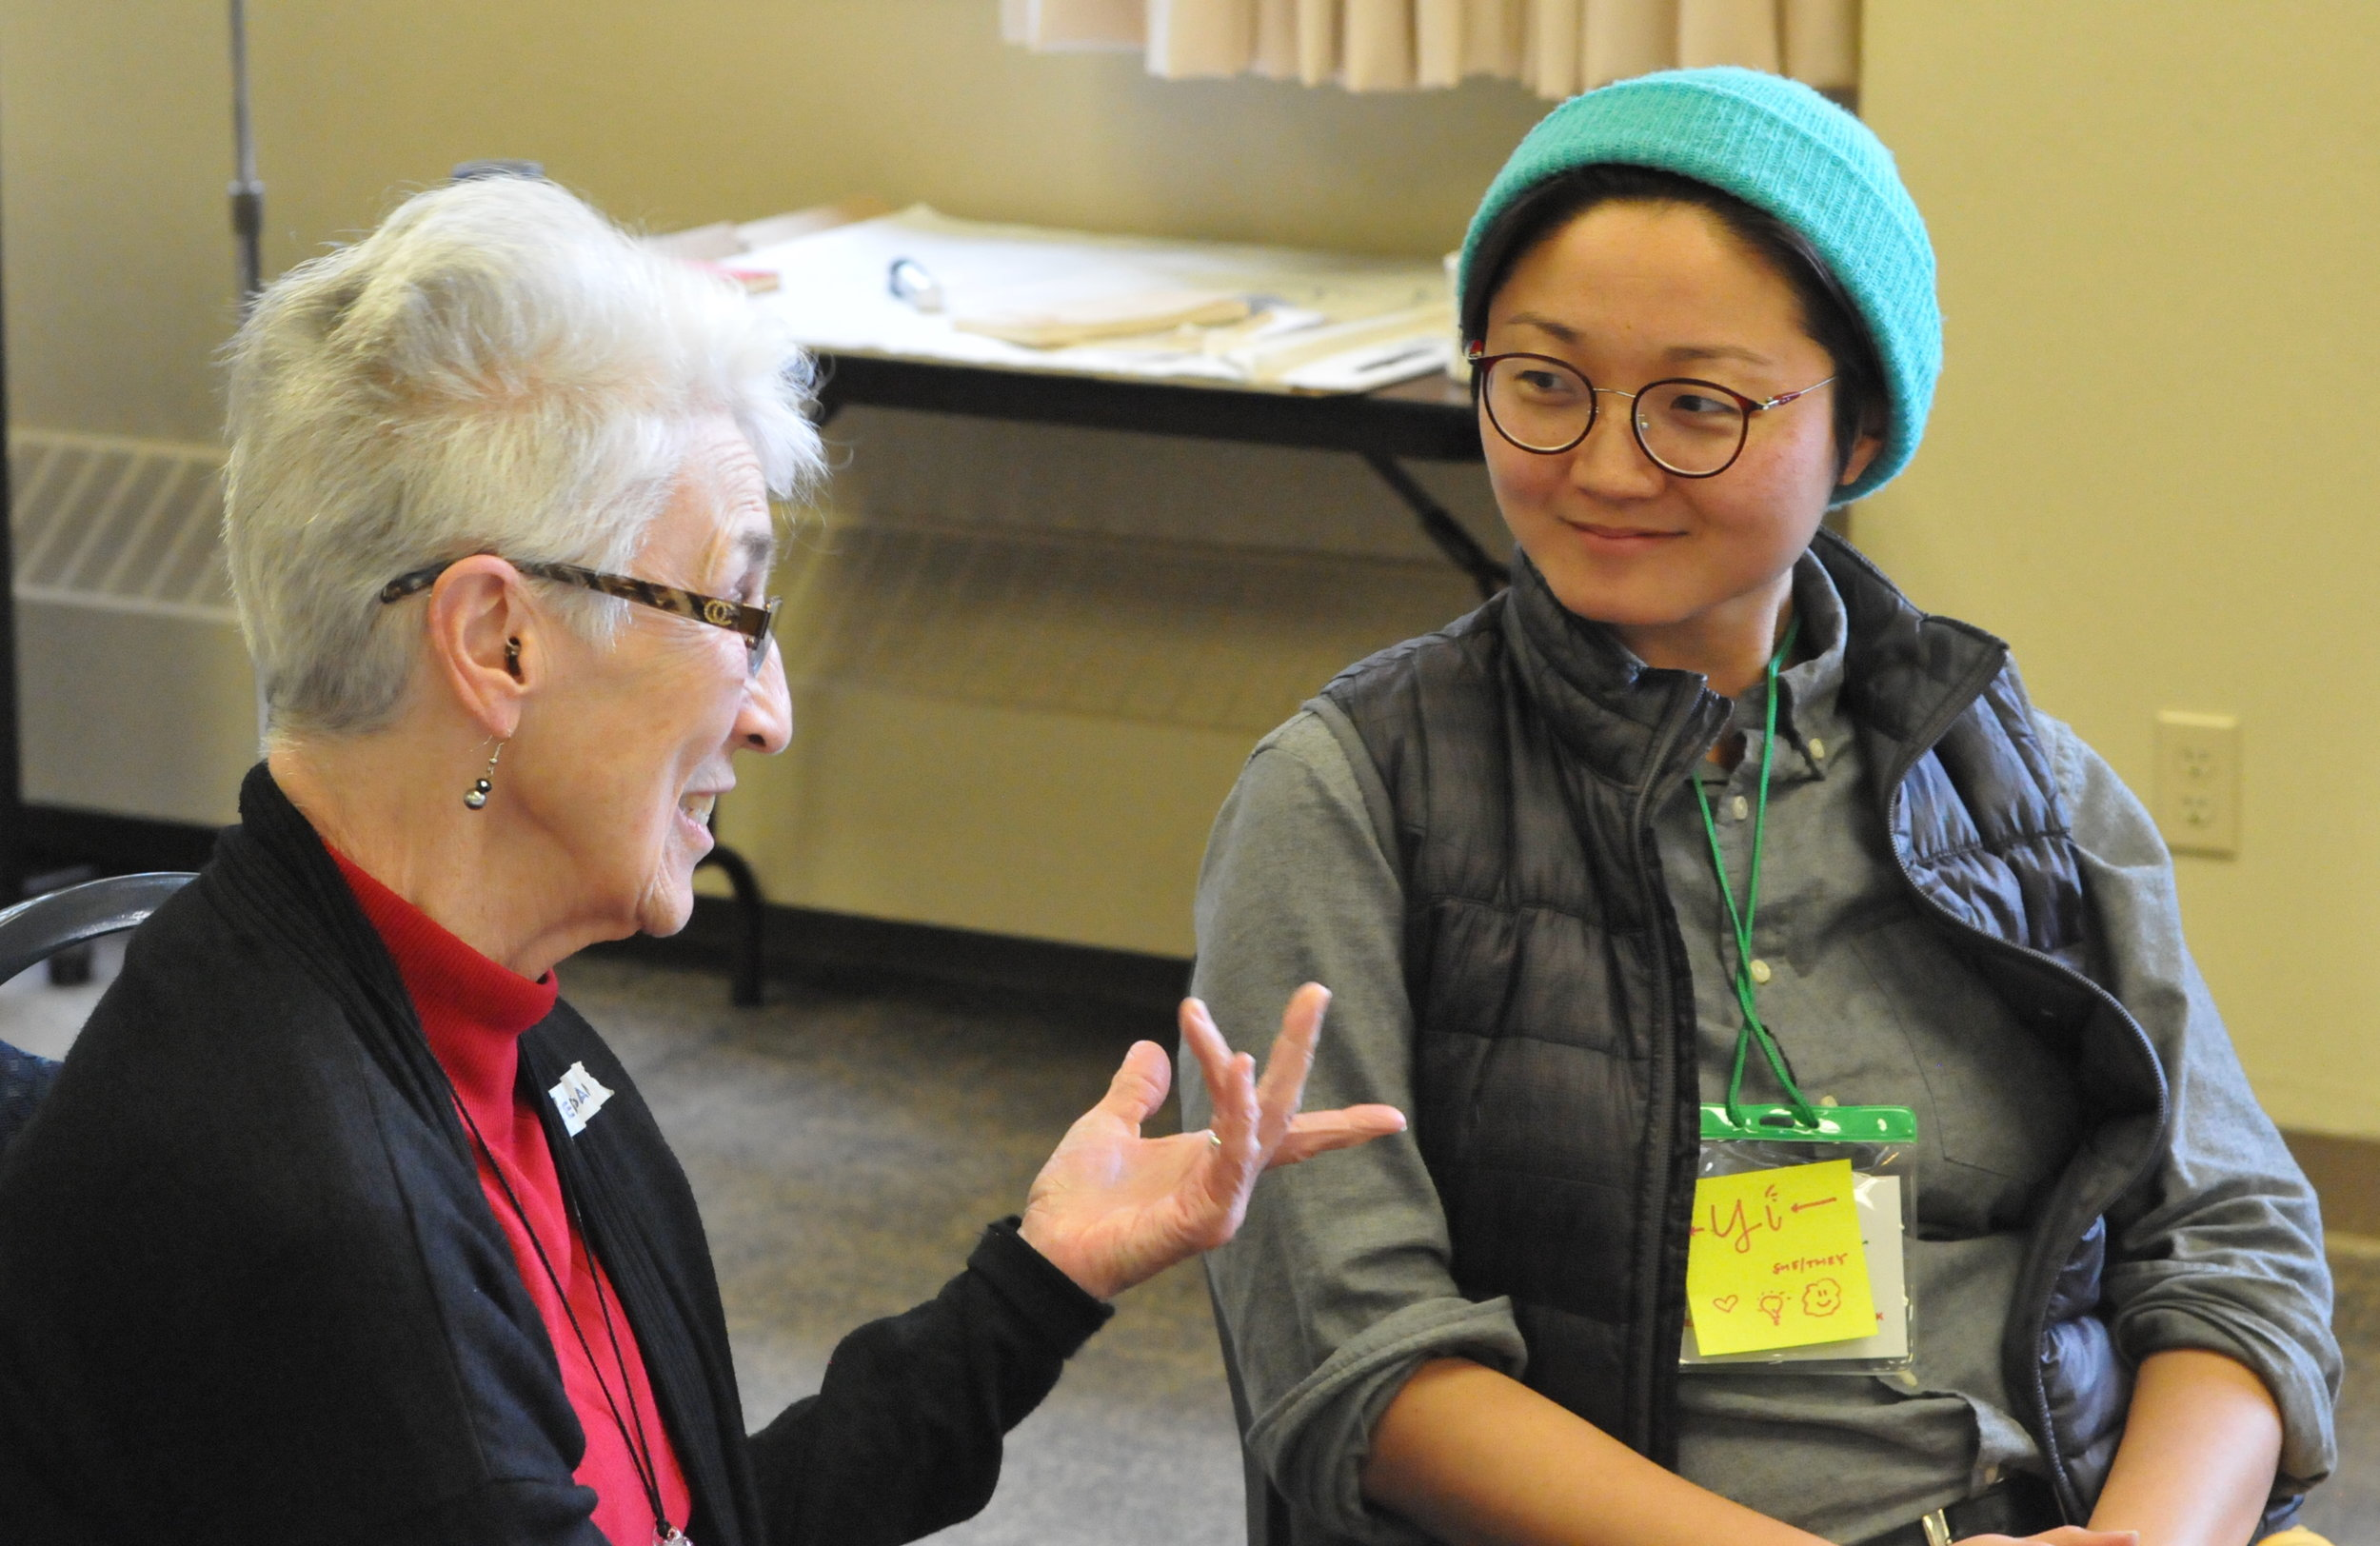 Yi Zhang and Sr. Rosann Fraher, RSM, at a Nuns & Nones gathering. Photo by Sarah Bradley.